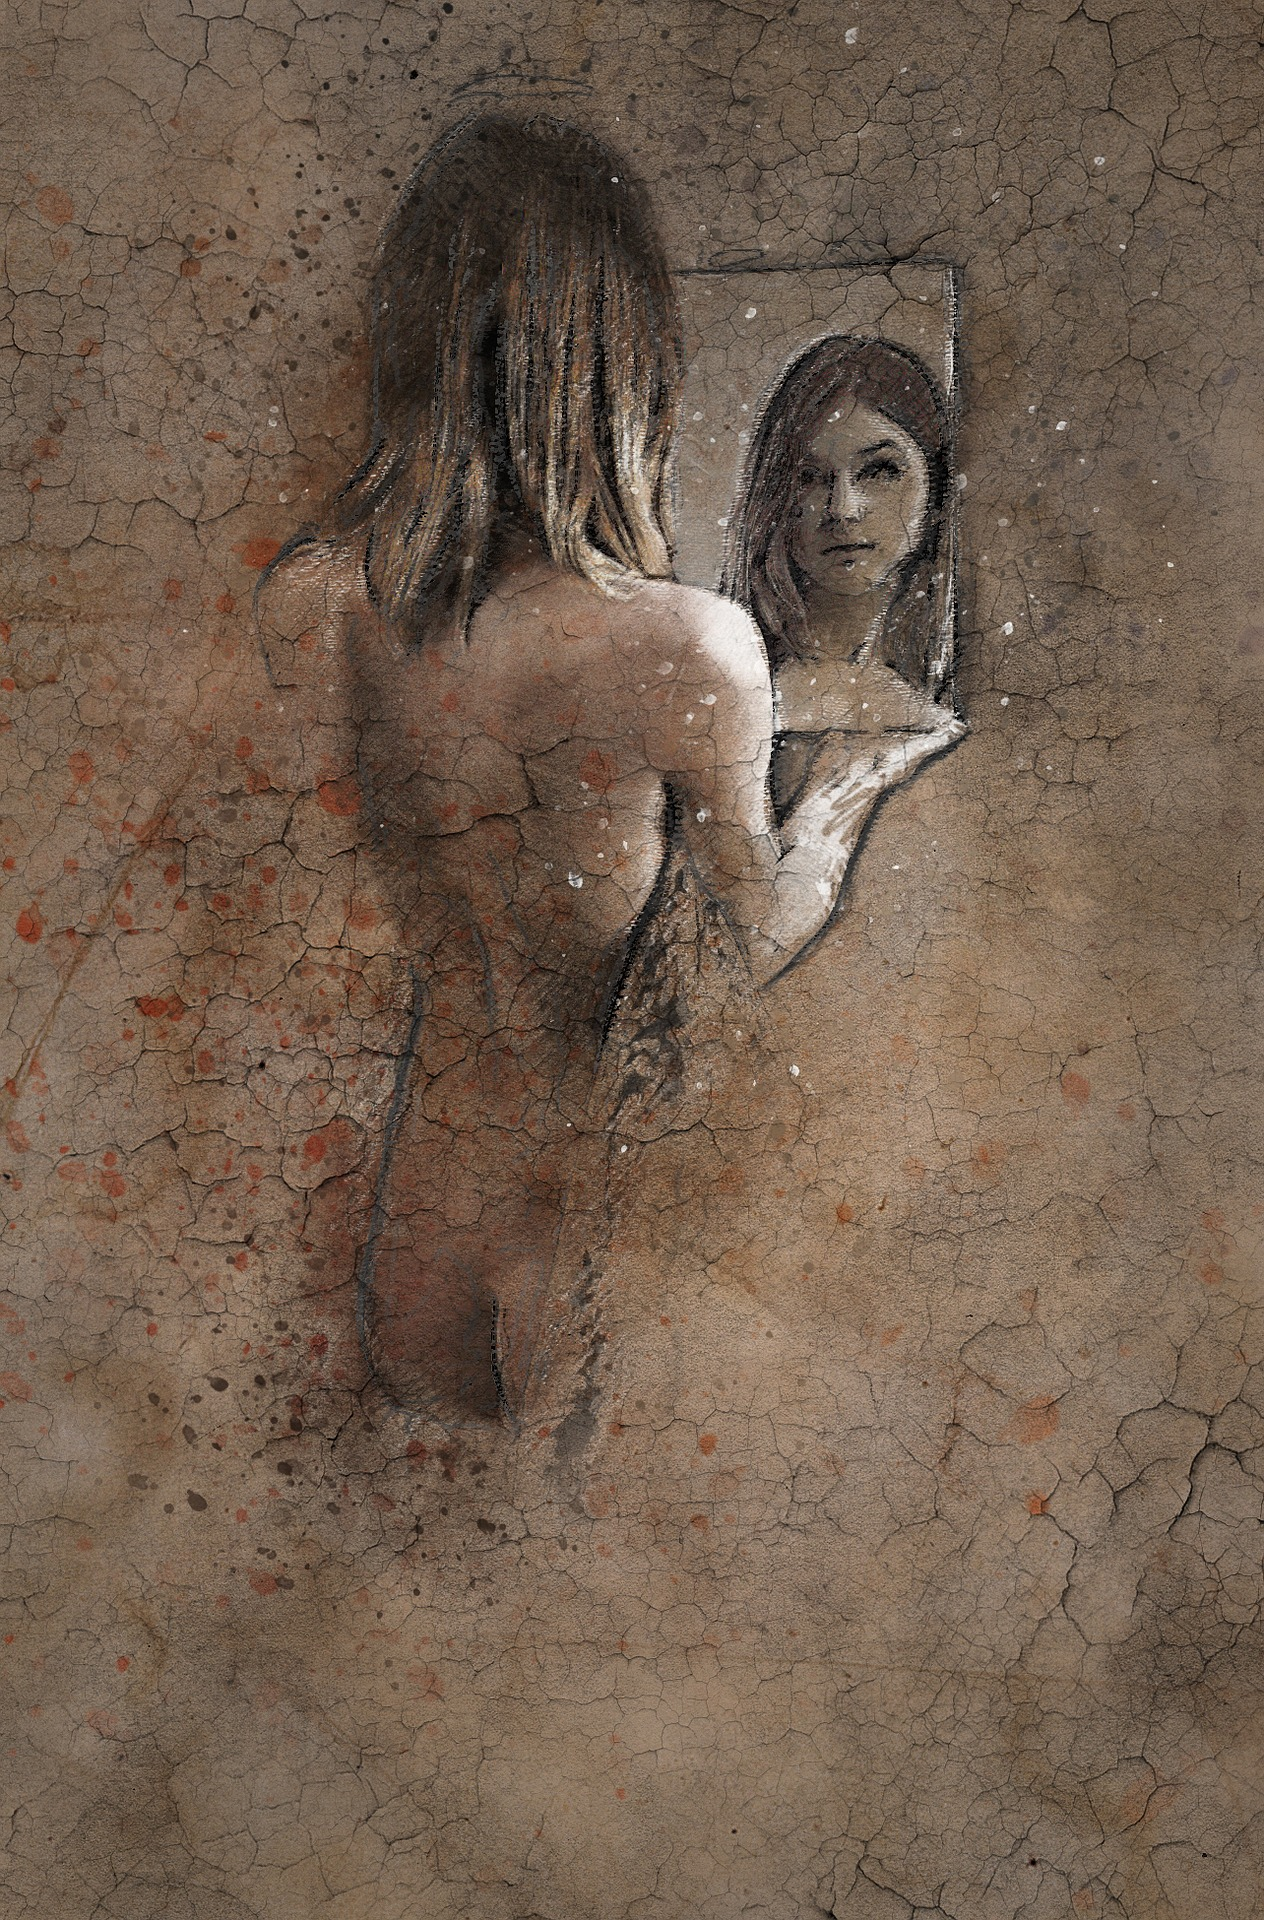 A painting of a young woman looking at her face in the mirror. For a post by Alicia Power.